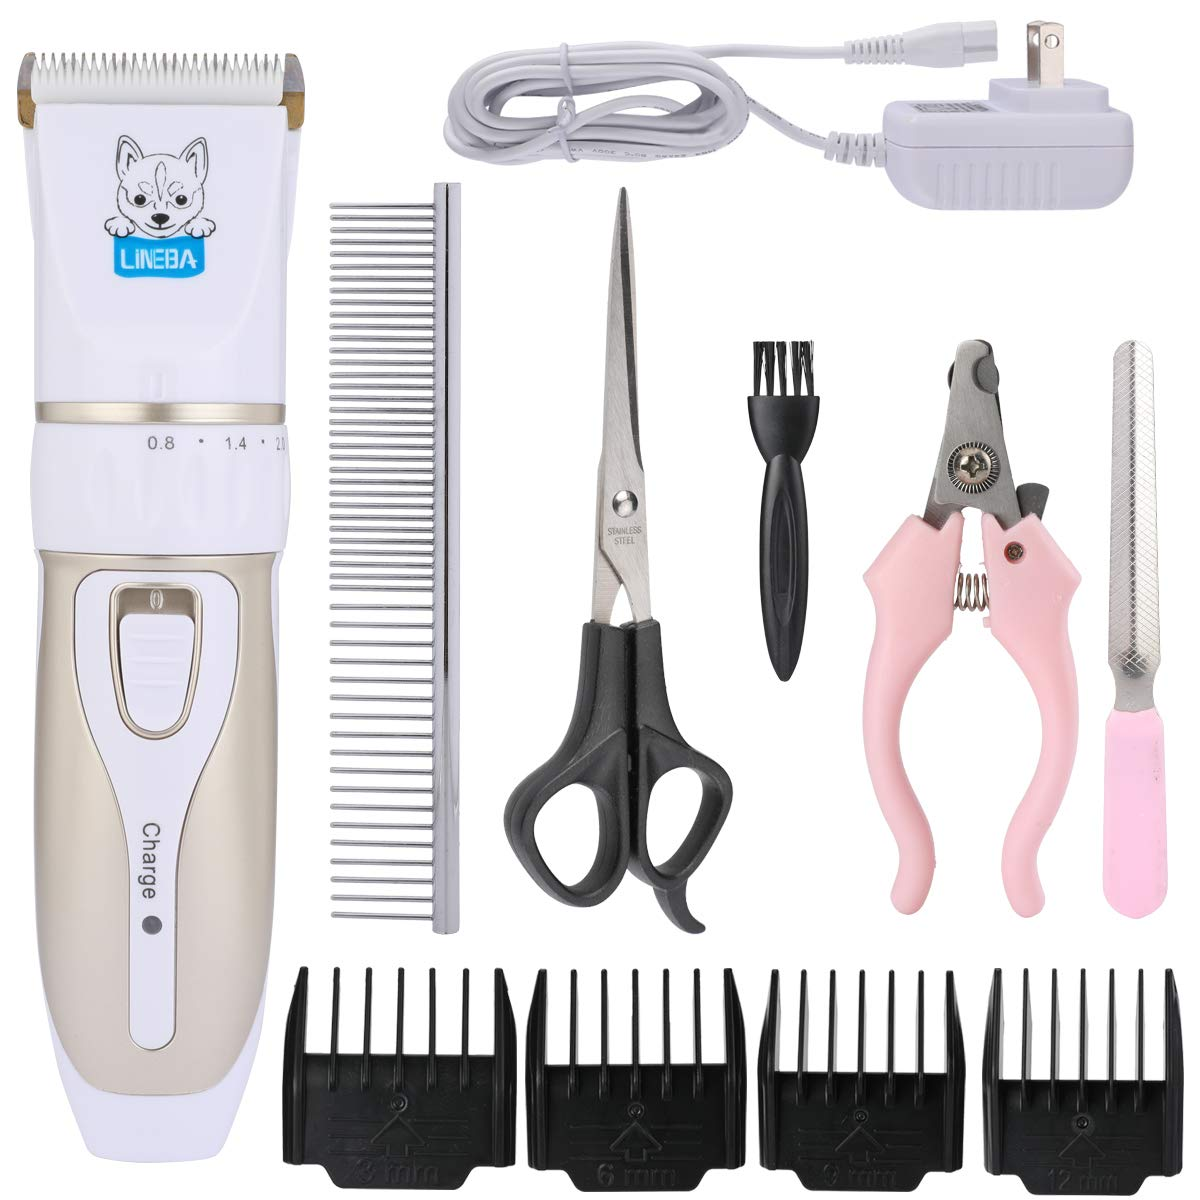 Lineba Ceramic Blade Rechargeable Cordless Pet Hair Clippers Low-Noise Pet Electric Grooming Kit Dogs and Cats Hair Remover by Lineba